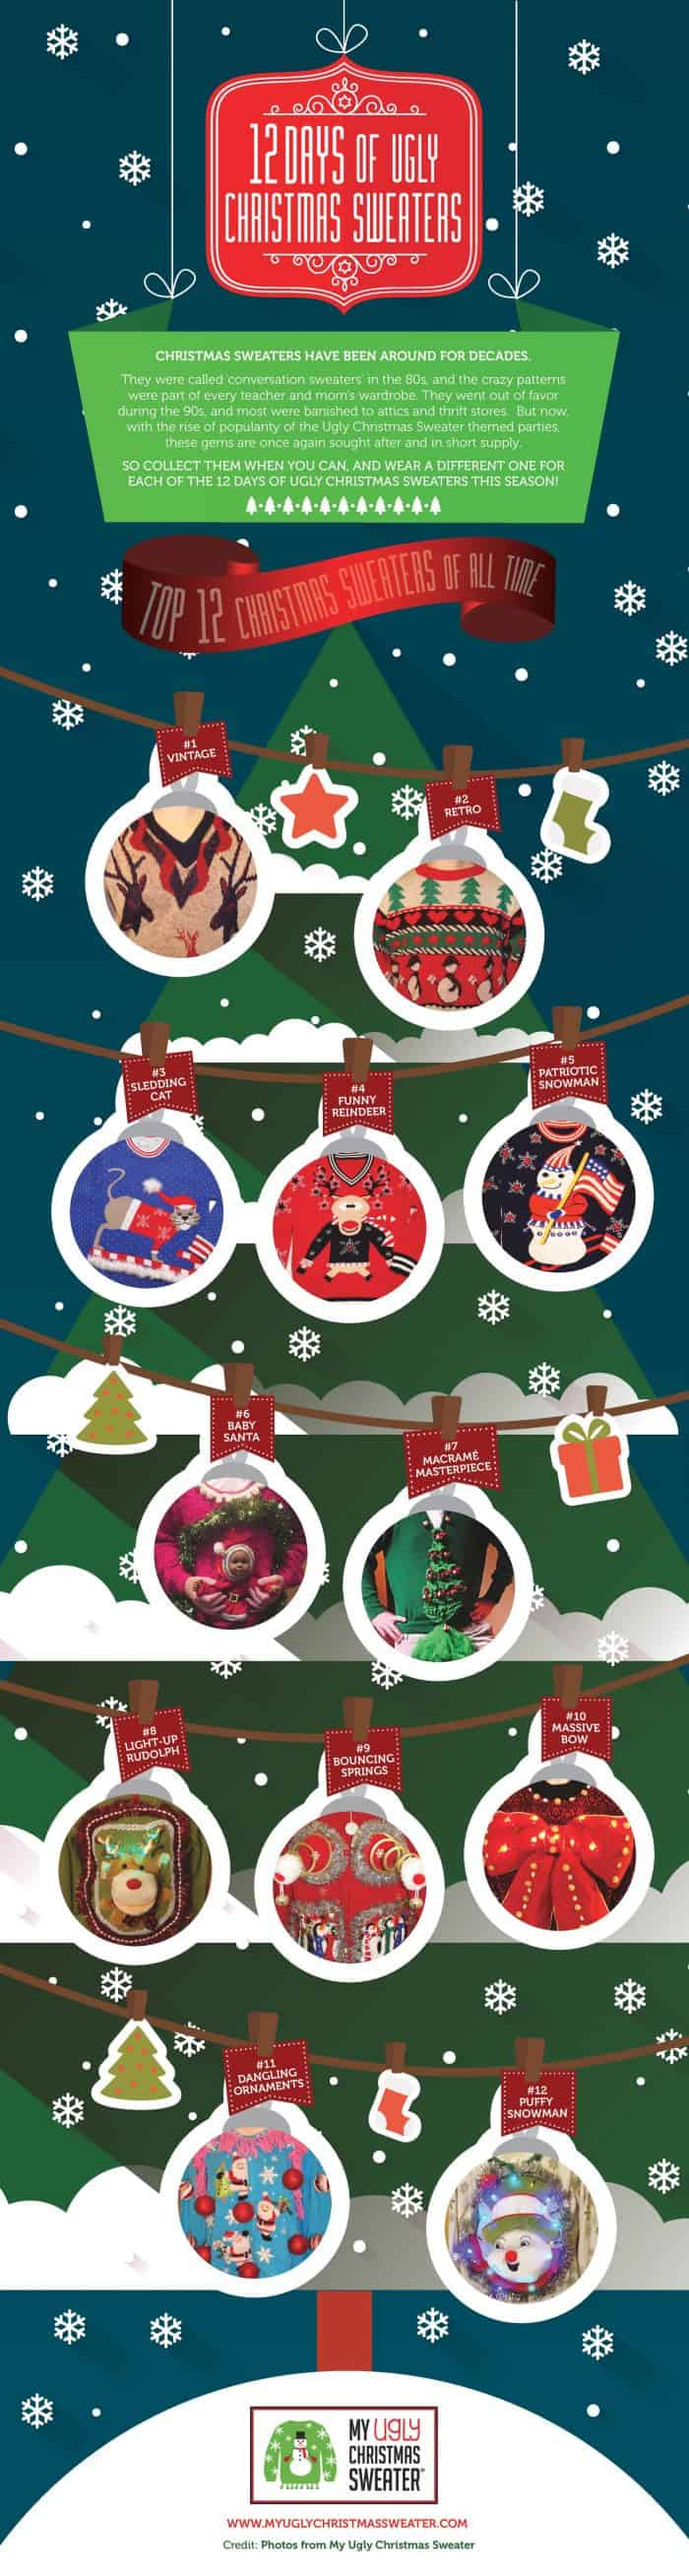 12 Days Of Ugly Christmas Sweaters Daily Infographic